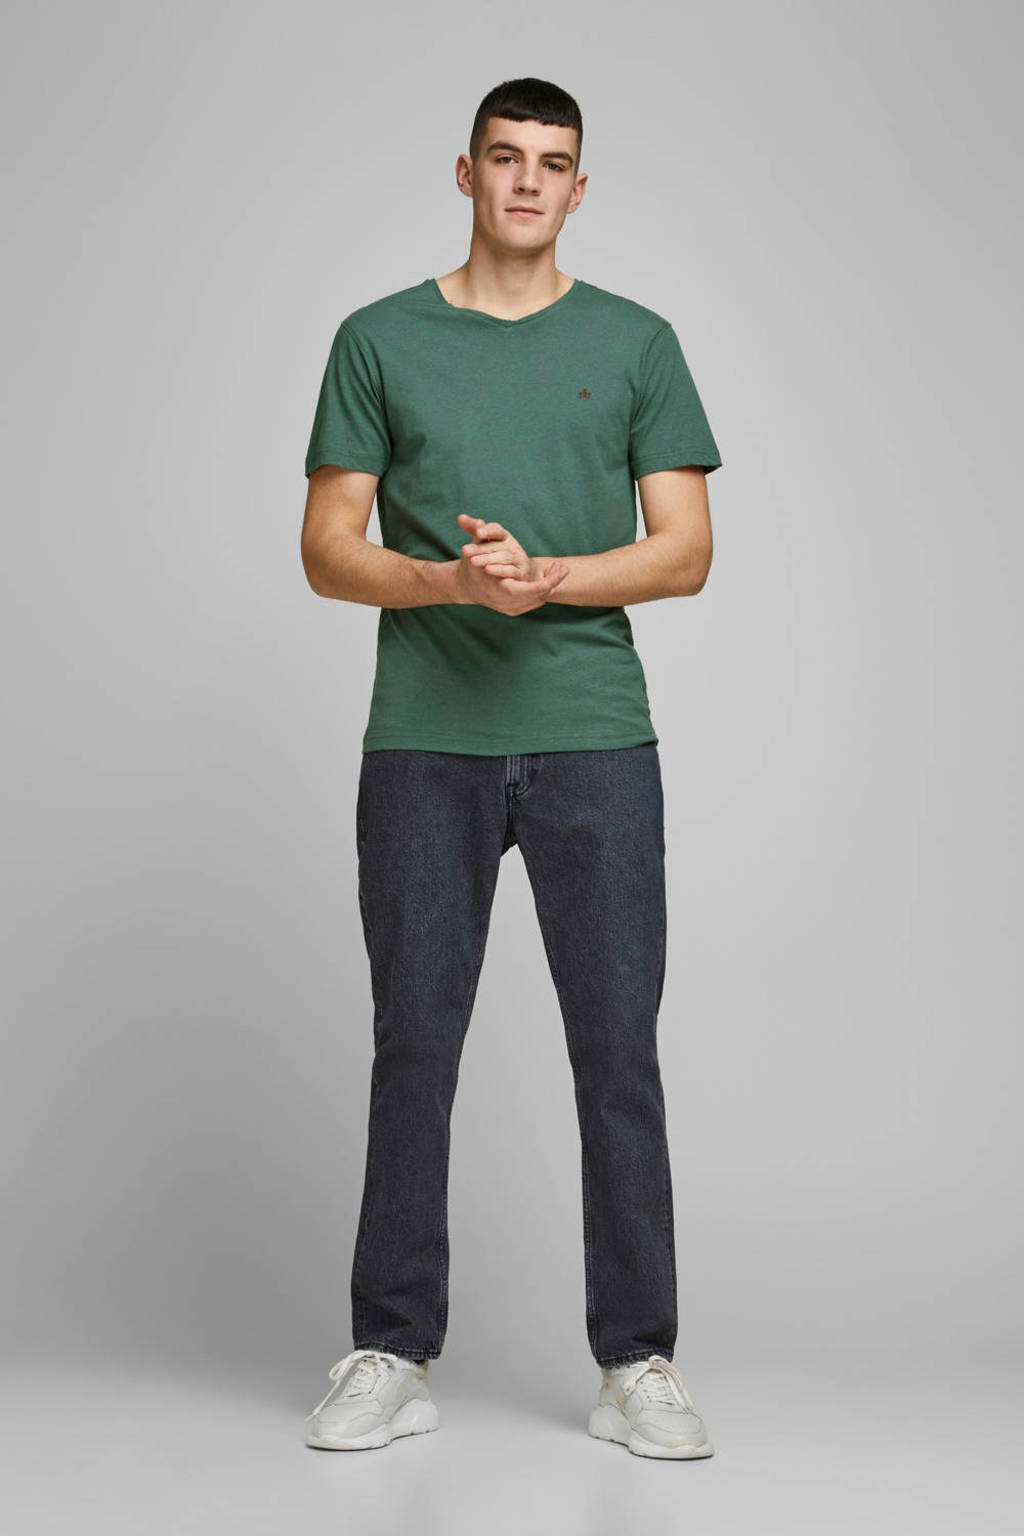 JACK & JONES PREMIUM T-shirt groen, Groen